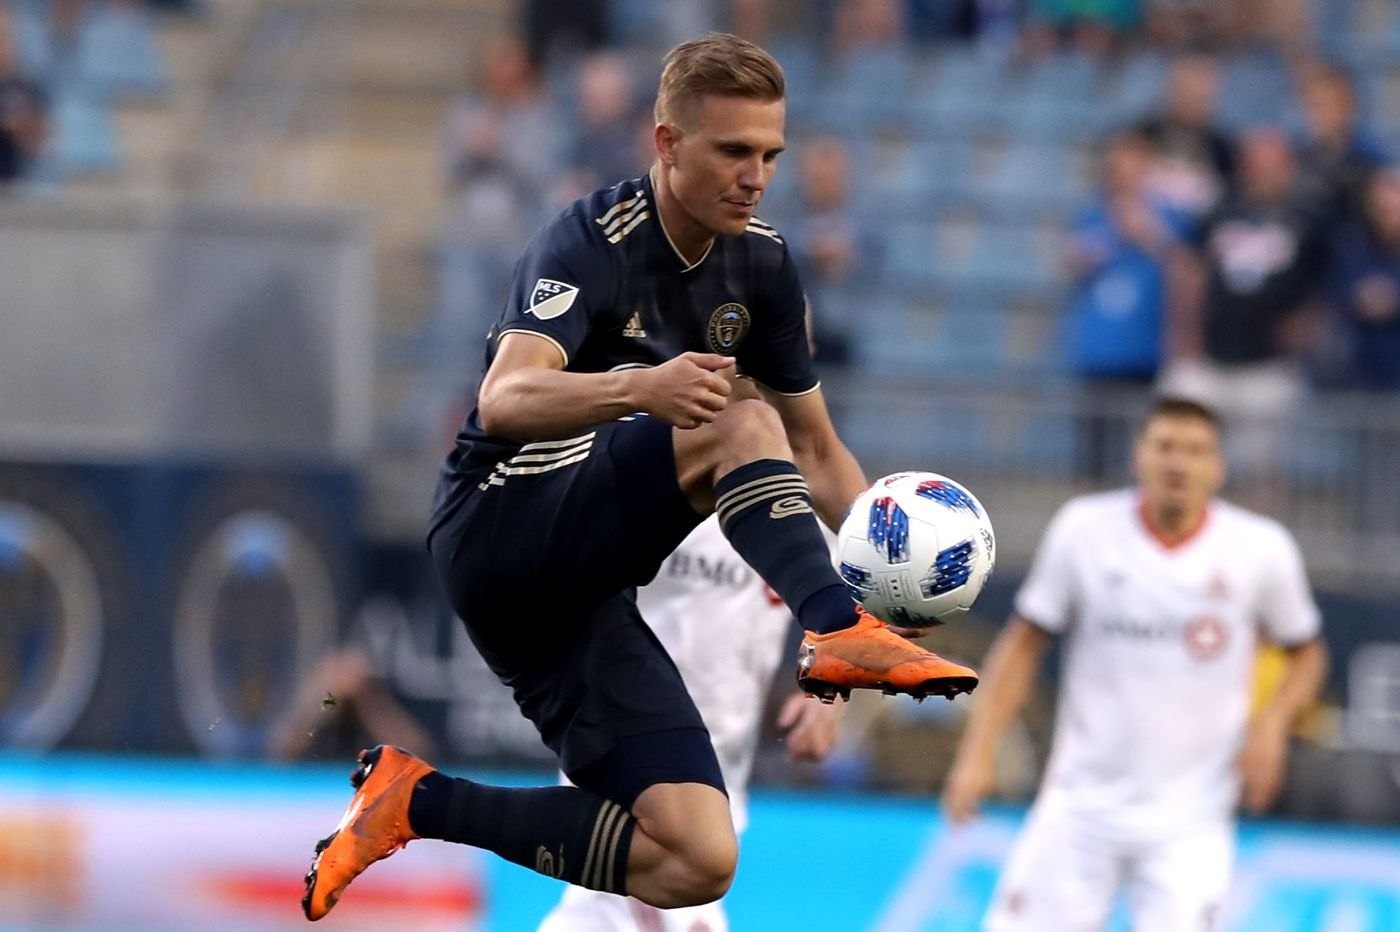 Borek Dockal has been well worth the biggest salary in Union history, with 15 assists and 5 goals